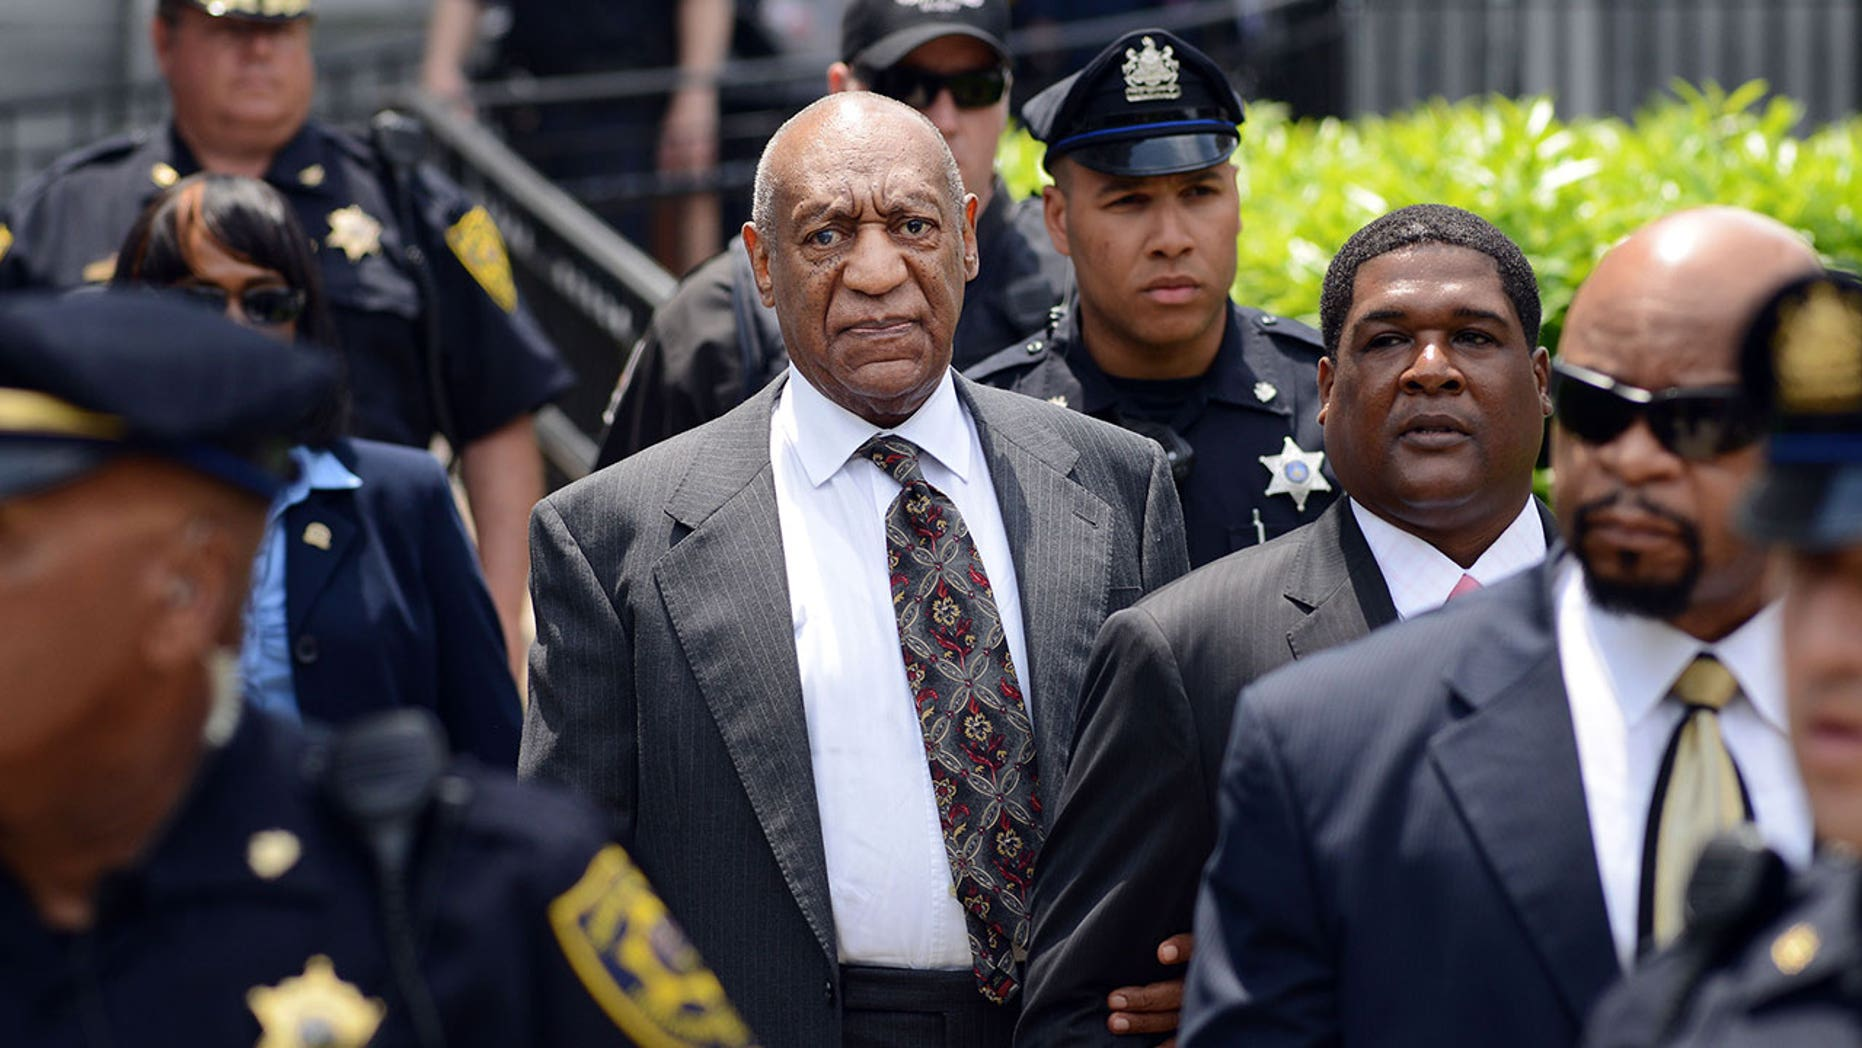 Bruce Castor explains 2004 'decision' not to prosecute Bill Cosby on sexual assault charges